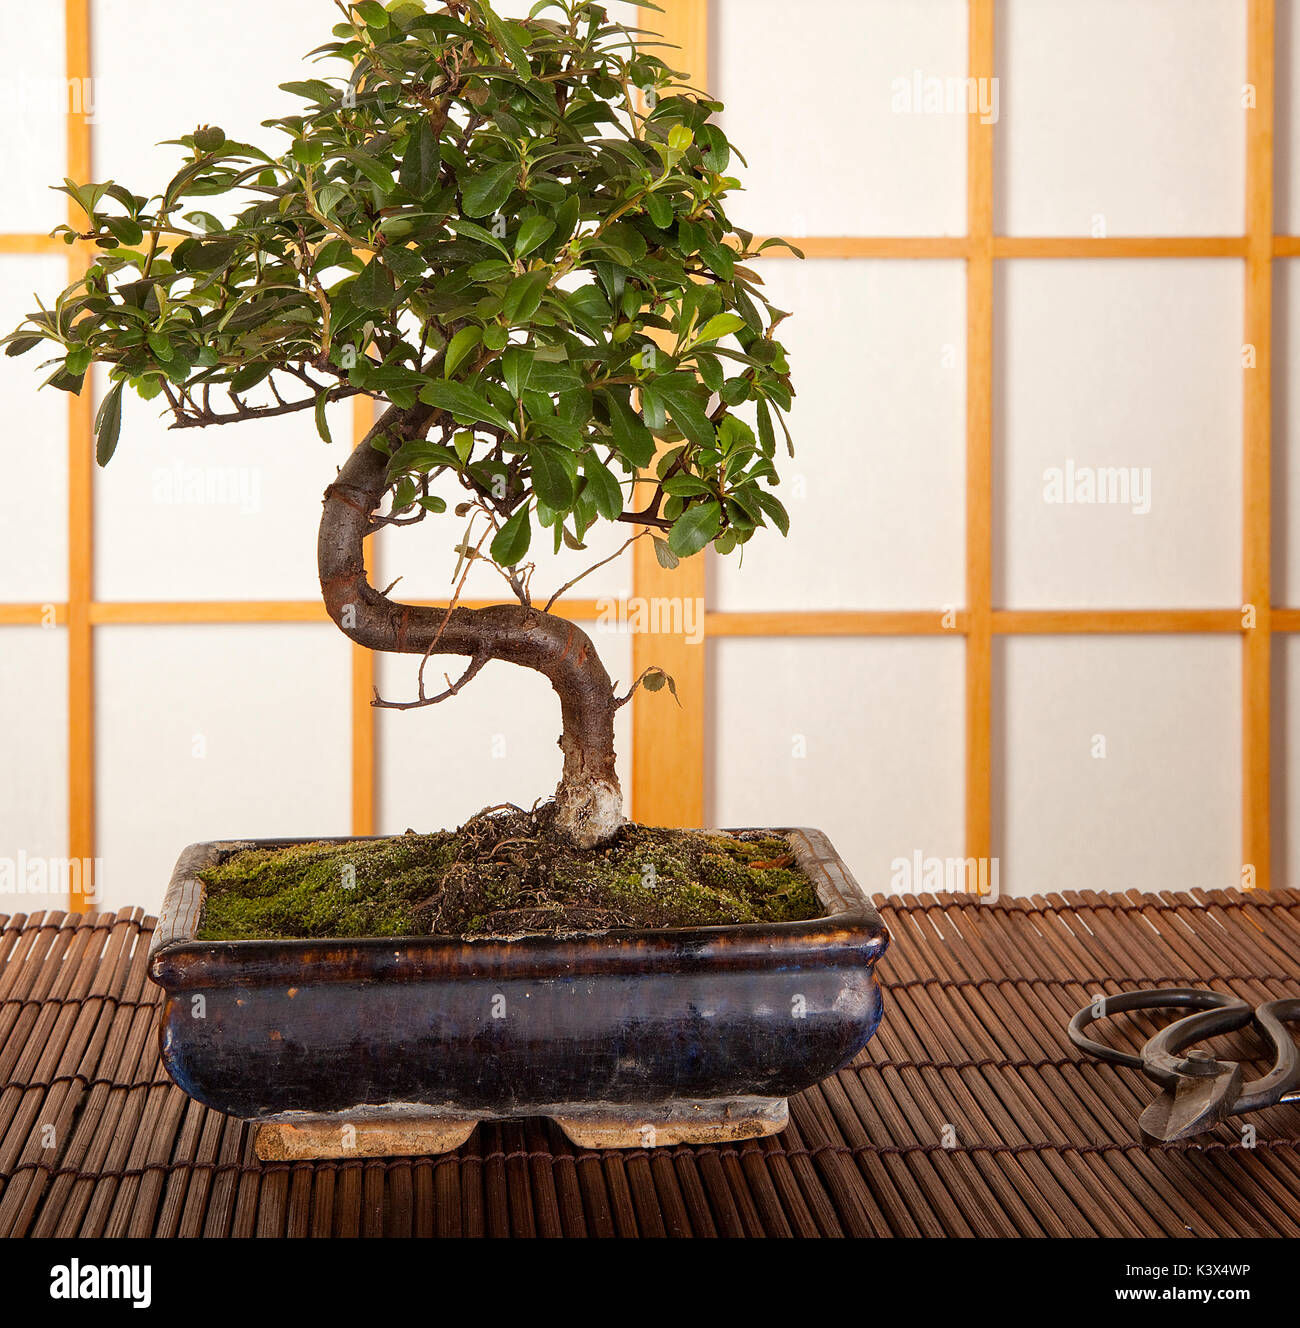 Japanese Interior With Bonsai Tree And Pruning Scissors Stock Photo Alamy